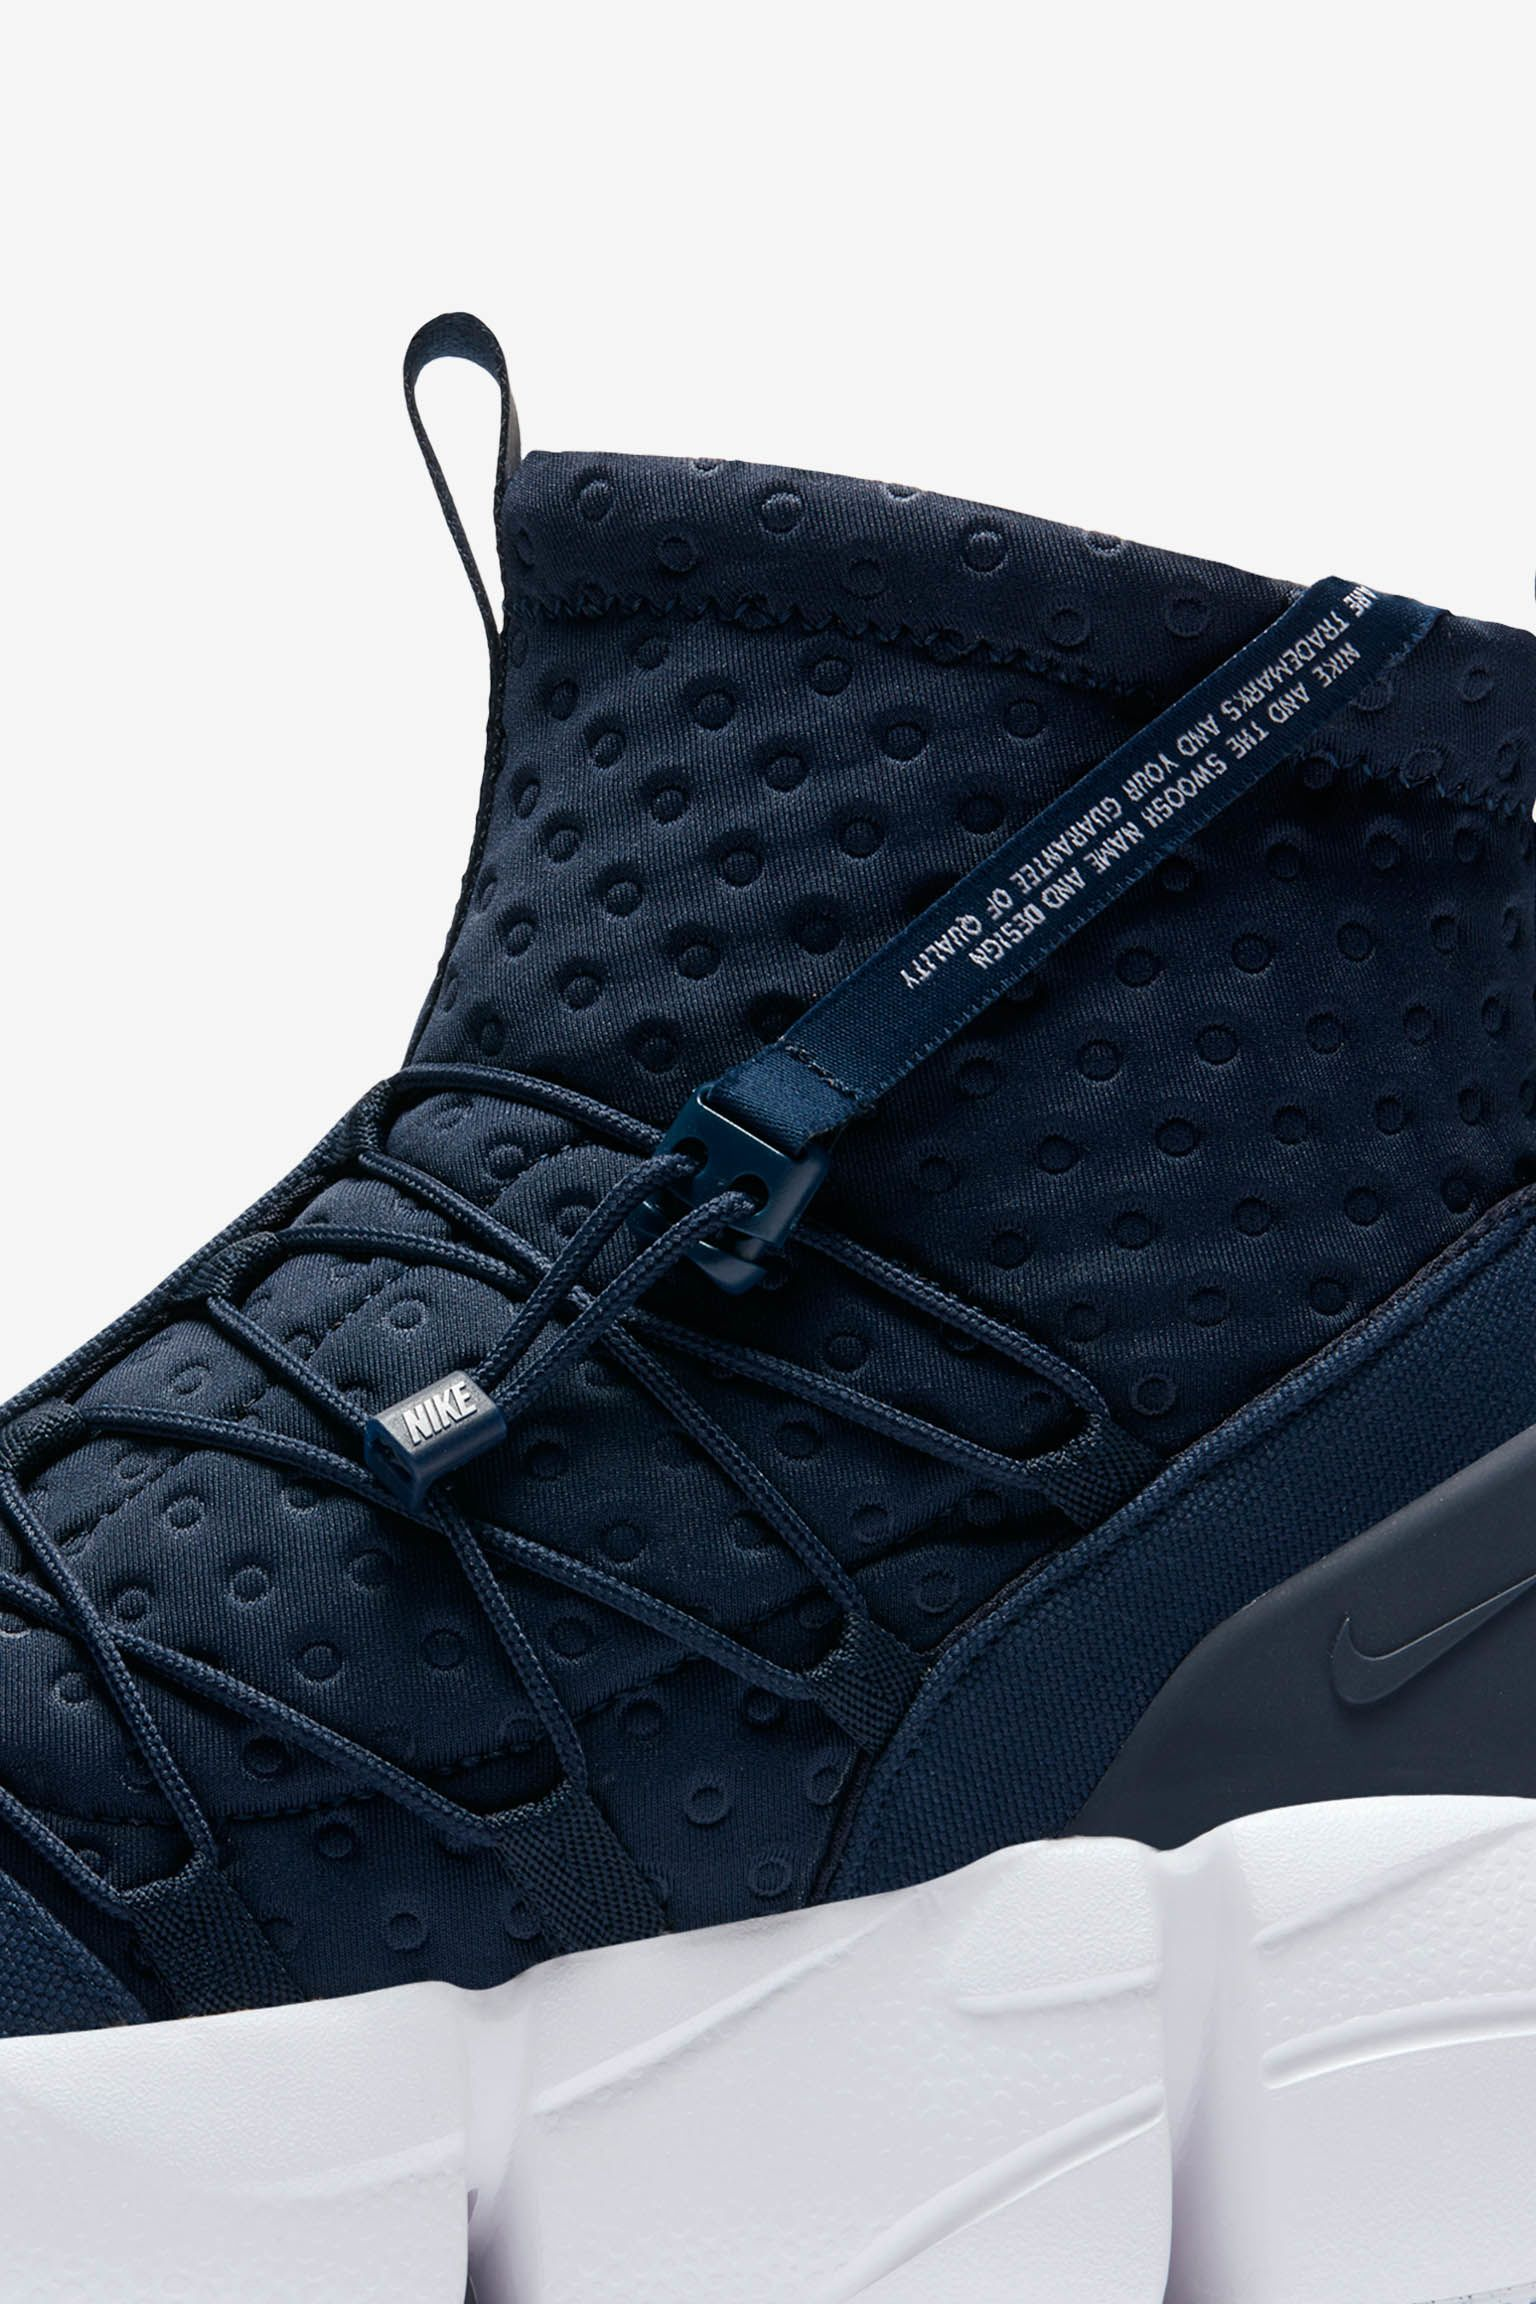 Nike Air Footscape Mid Utility 'Obsidian & White' Release Date